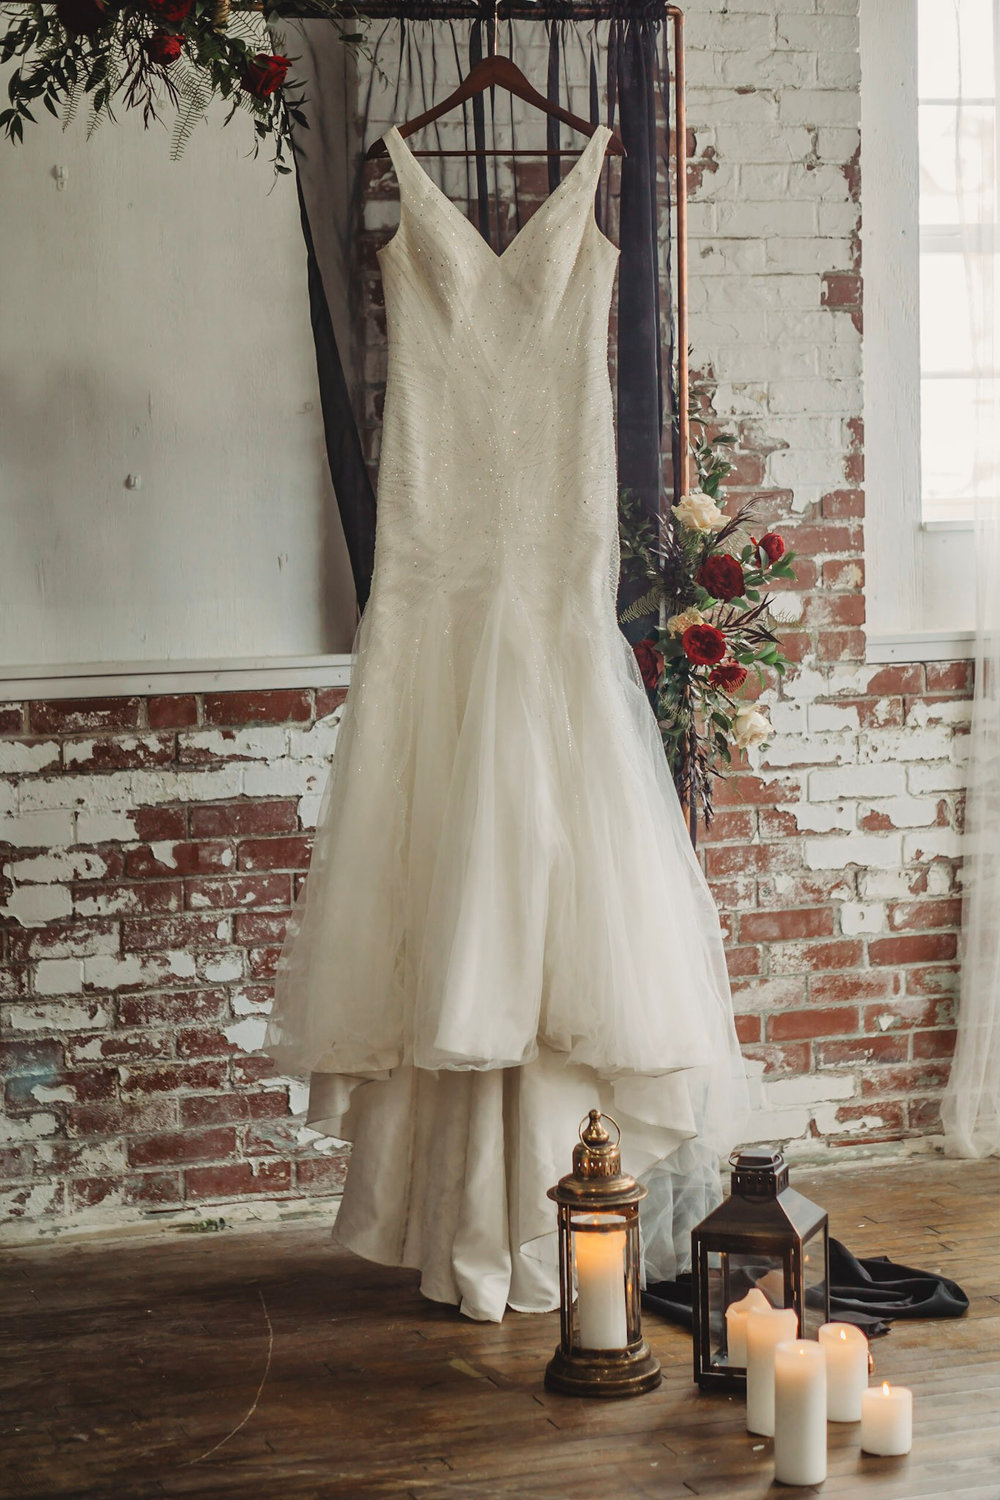 Moody Vintage Wedding Inspiration in Bethlehem PA56.jpg